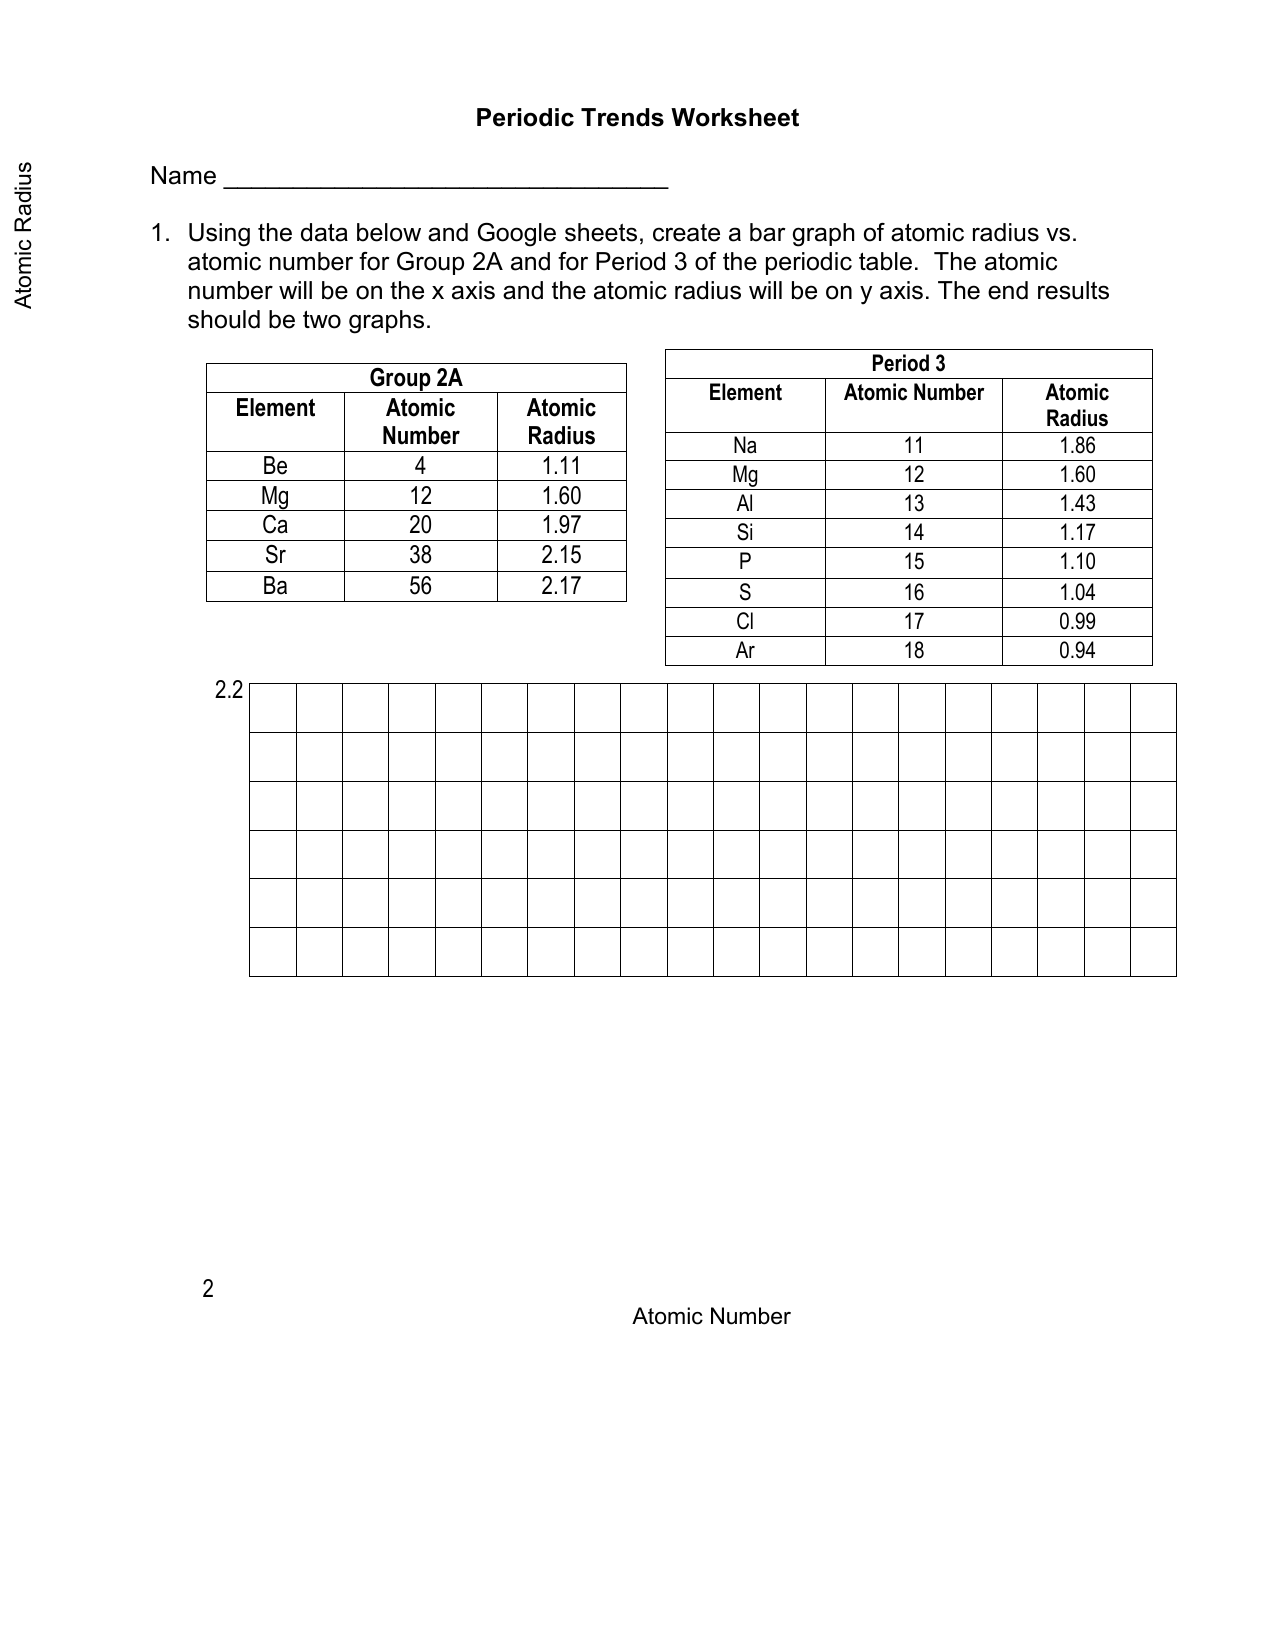 Chemistry Honors Periodic Trends Worksheet